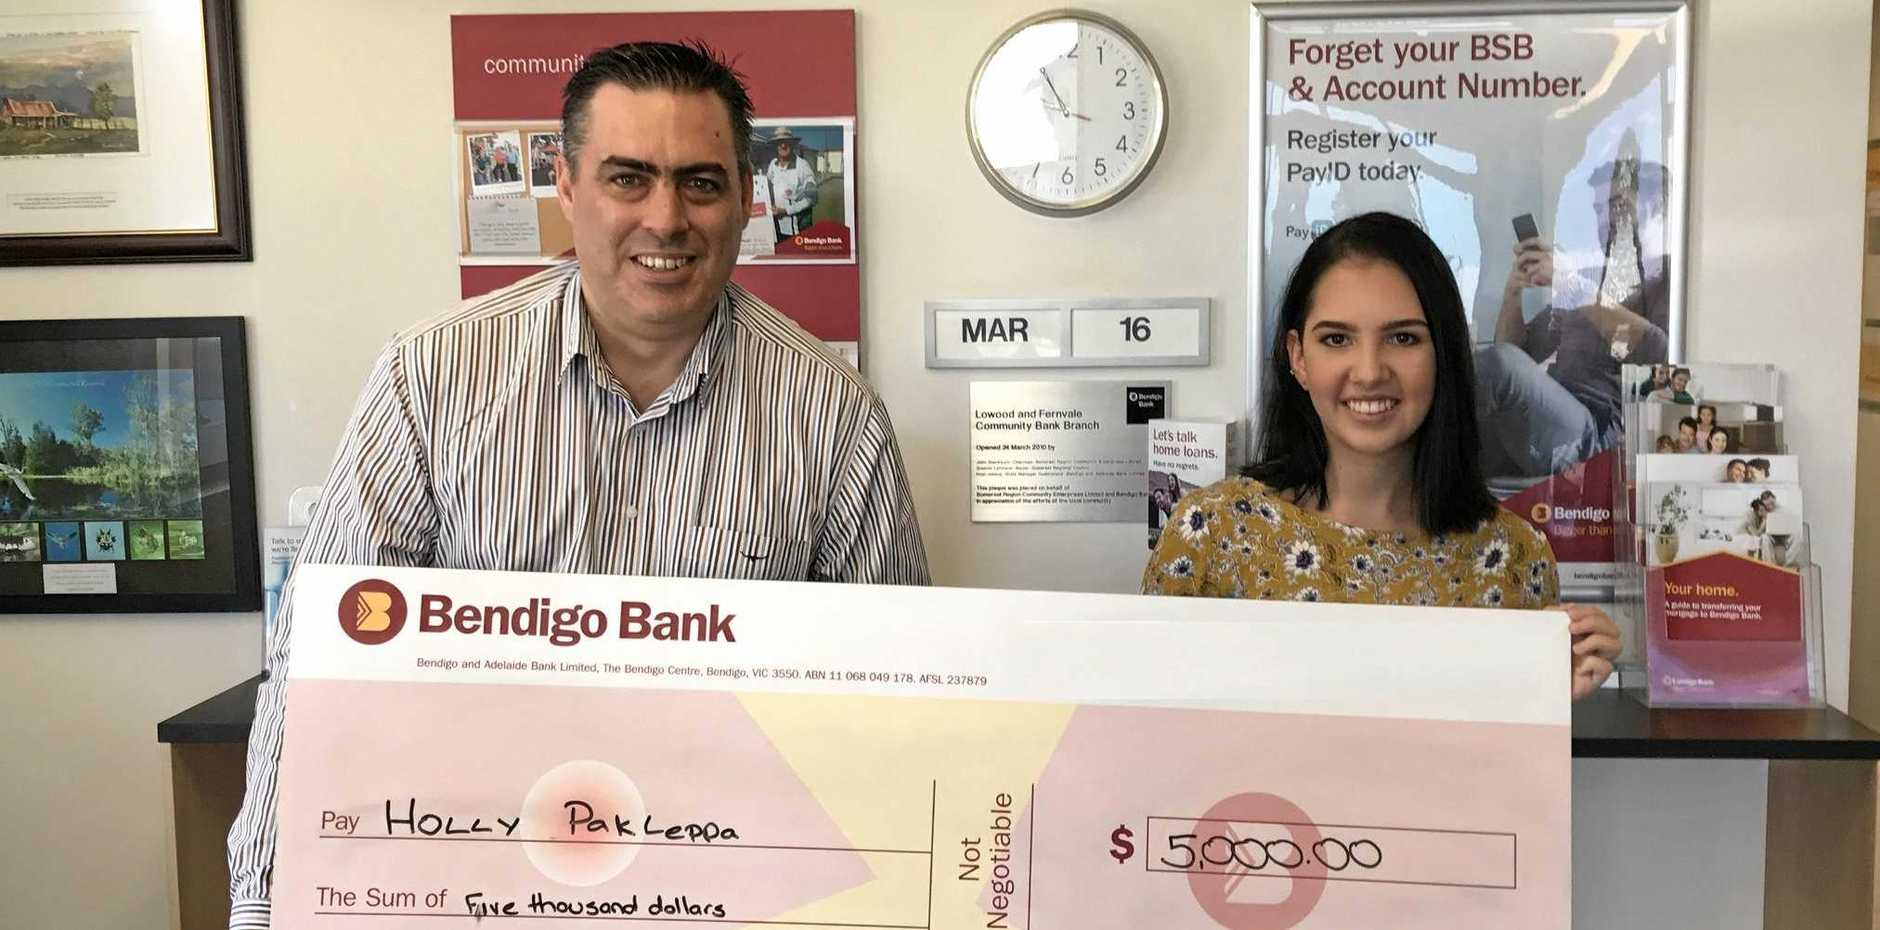 OUR BANK: Holly Pakleppa receives a scholarship cheque from Chairman of Lowood and Fernvale Community Bank Keith Manz - just one of the many ways the bank helps the community.